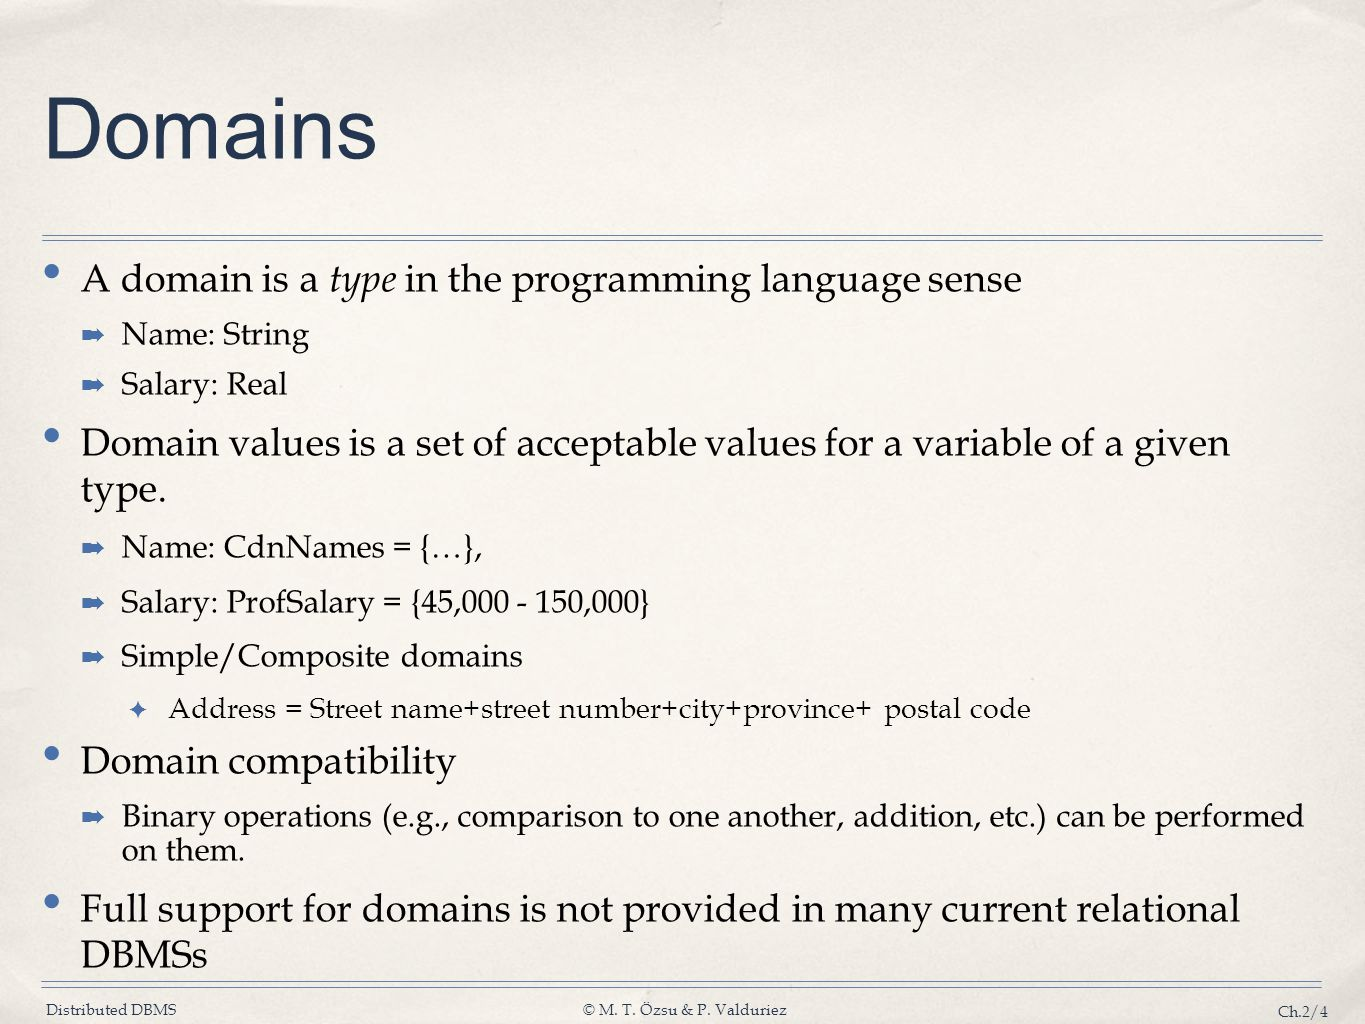 Distributed DBMS© M. T. Özsu & P. Valduriez Ch.2/4 Domains A domain is a type in the programming language sense Name: String Salary: Real Domain value